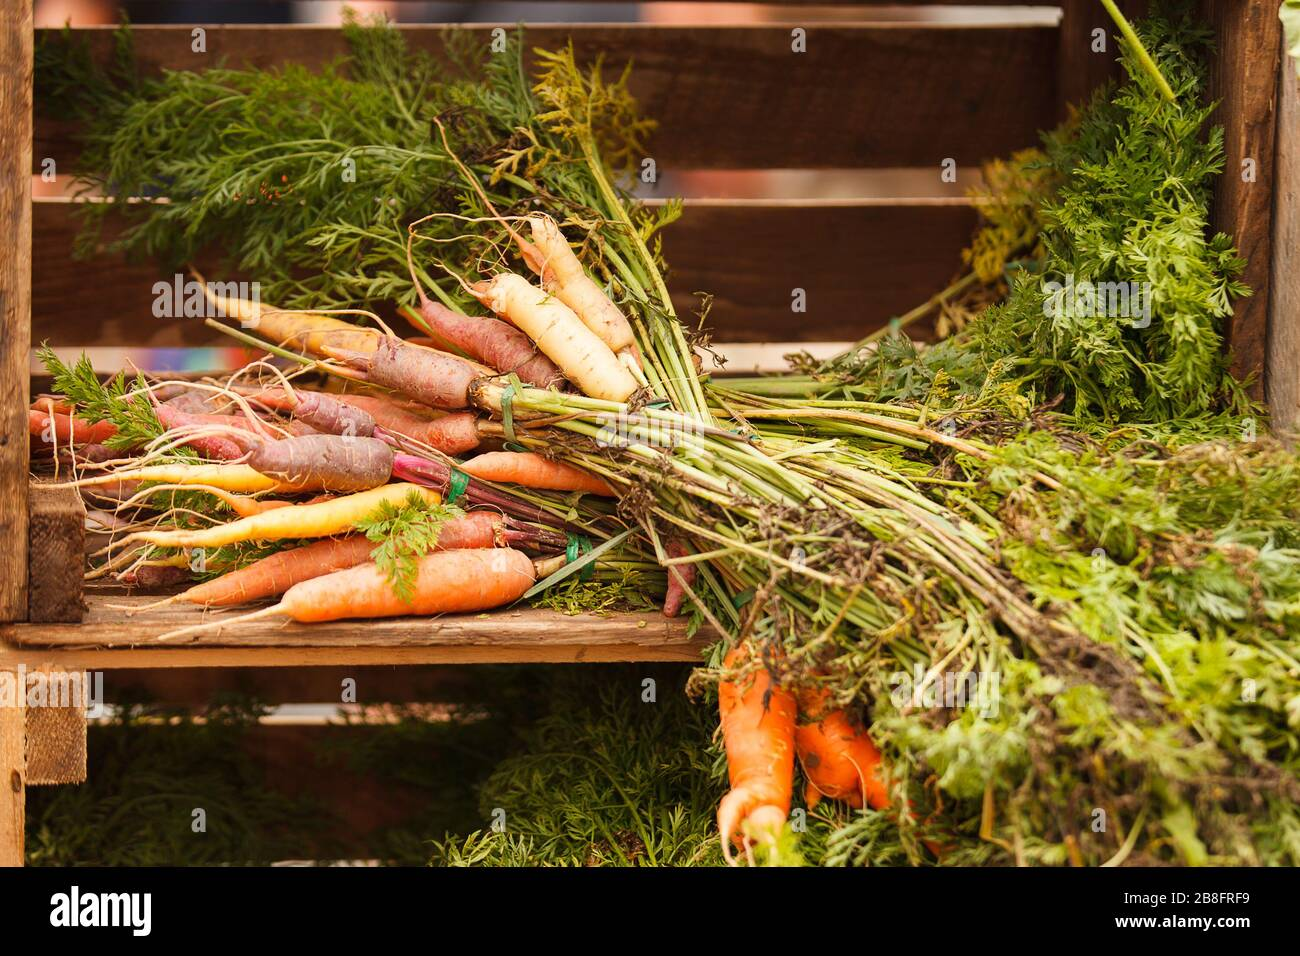 Bundles of carrots in a wooden crate Stock Photo